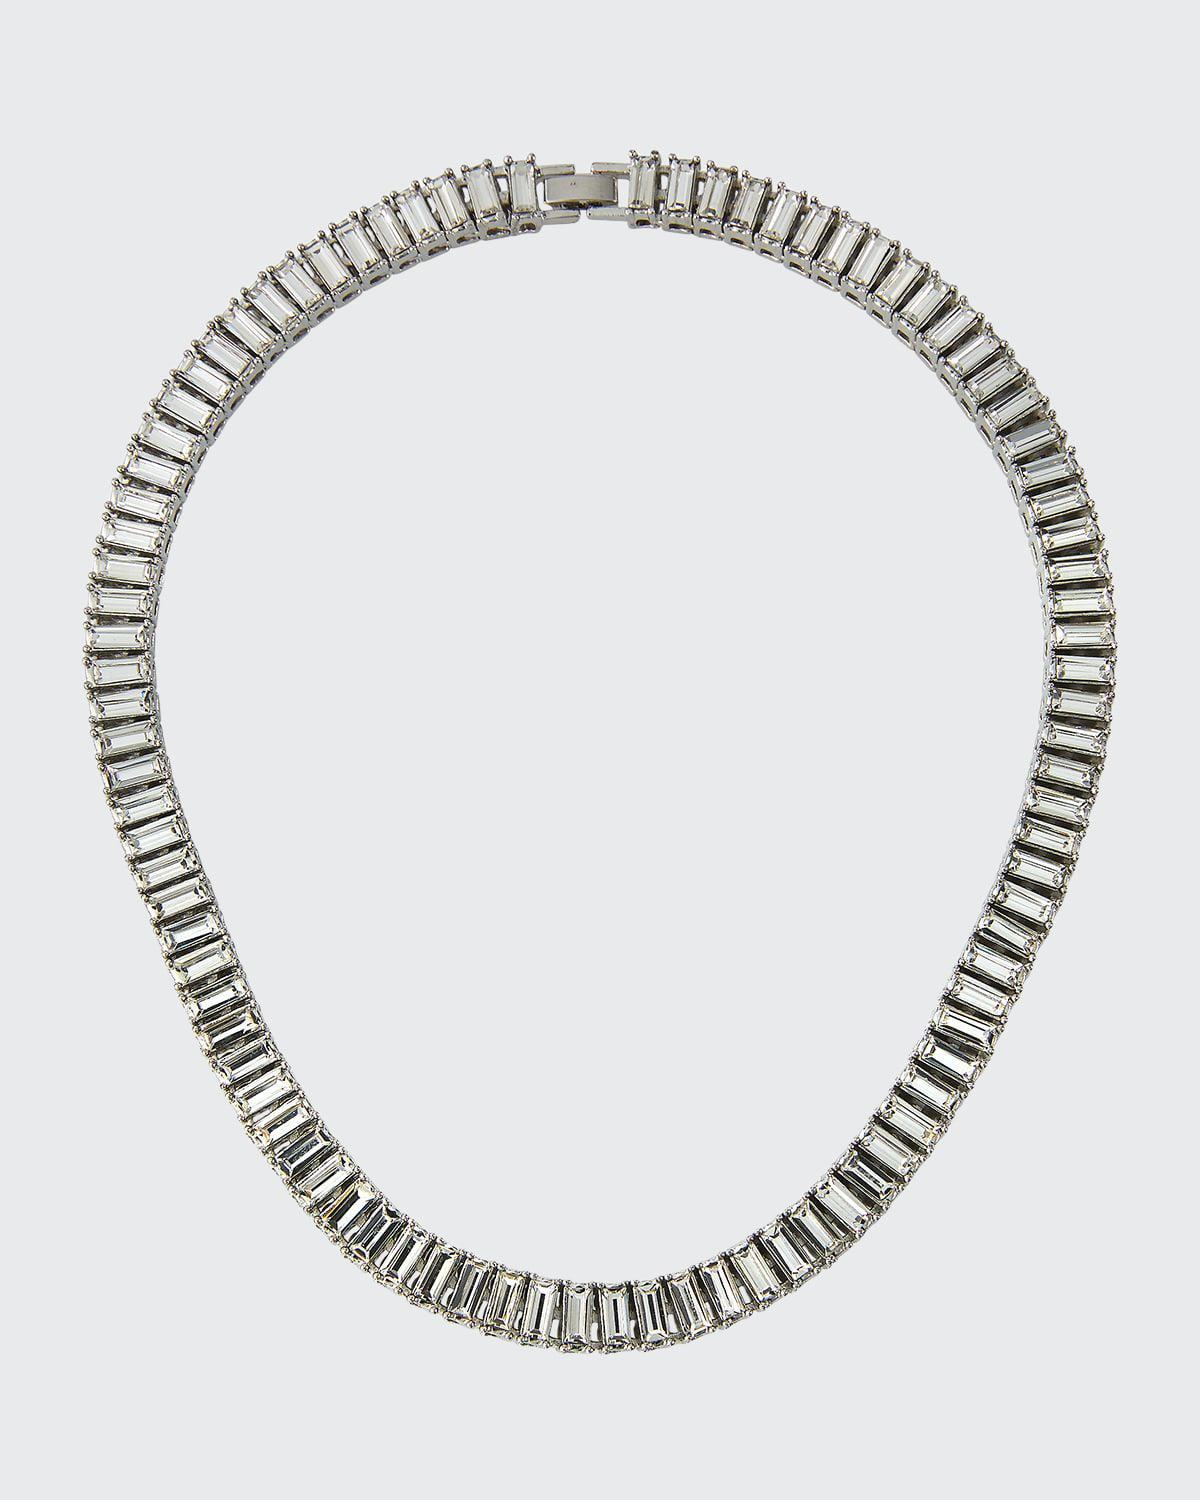 Swag Baguette Collar Necklace